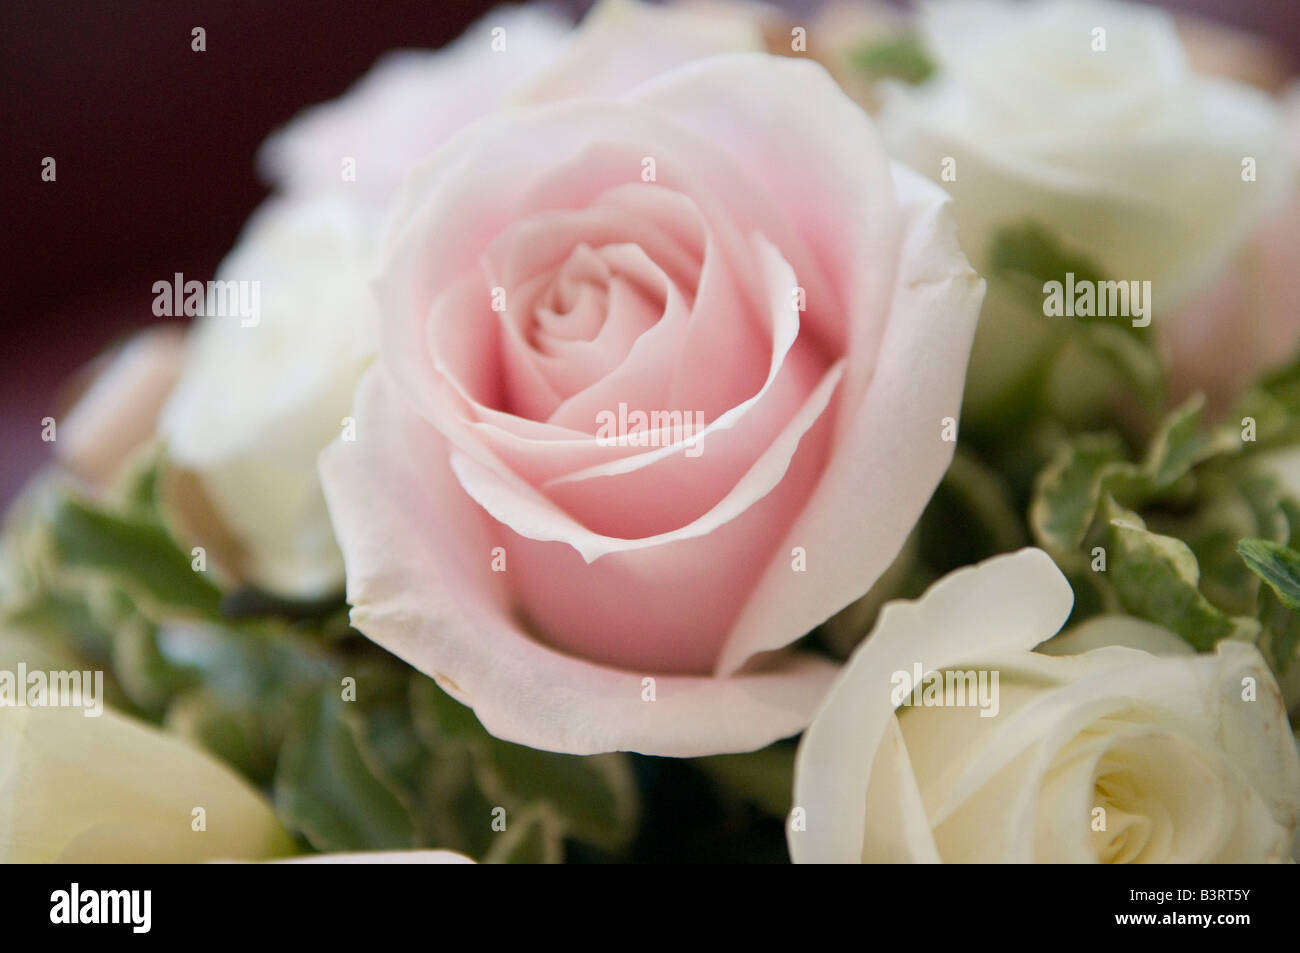 Rose bouquets stock photos rose bouquets stock images alamy rose roses flower flowers florist floristry bouquet flower bouquets wedding weddings romance romantic show of affection izmirmasajfo